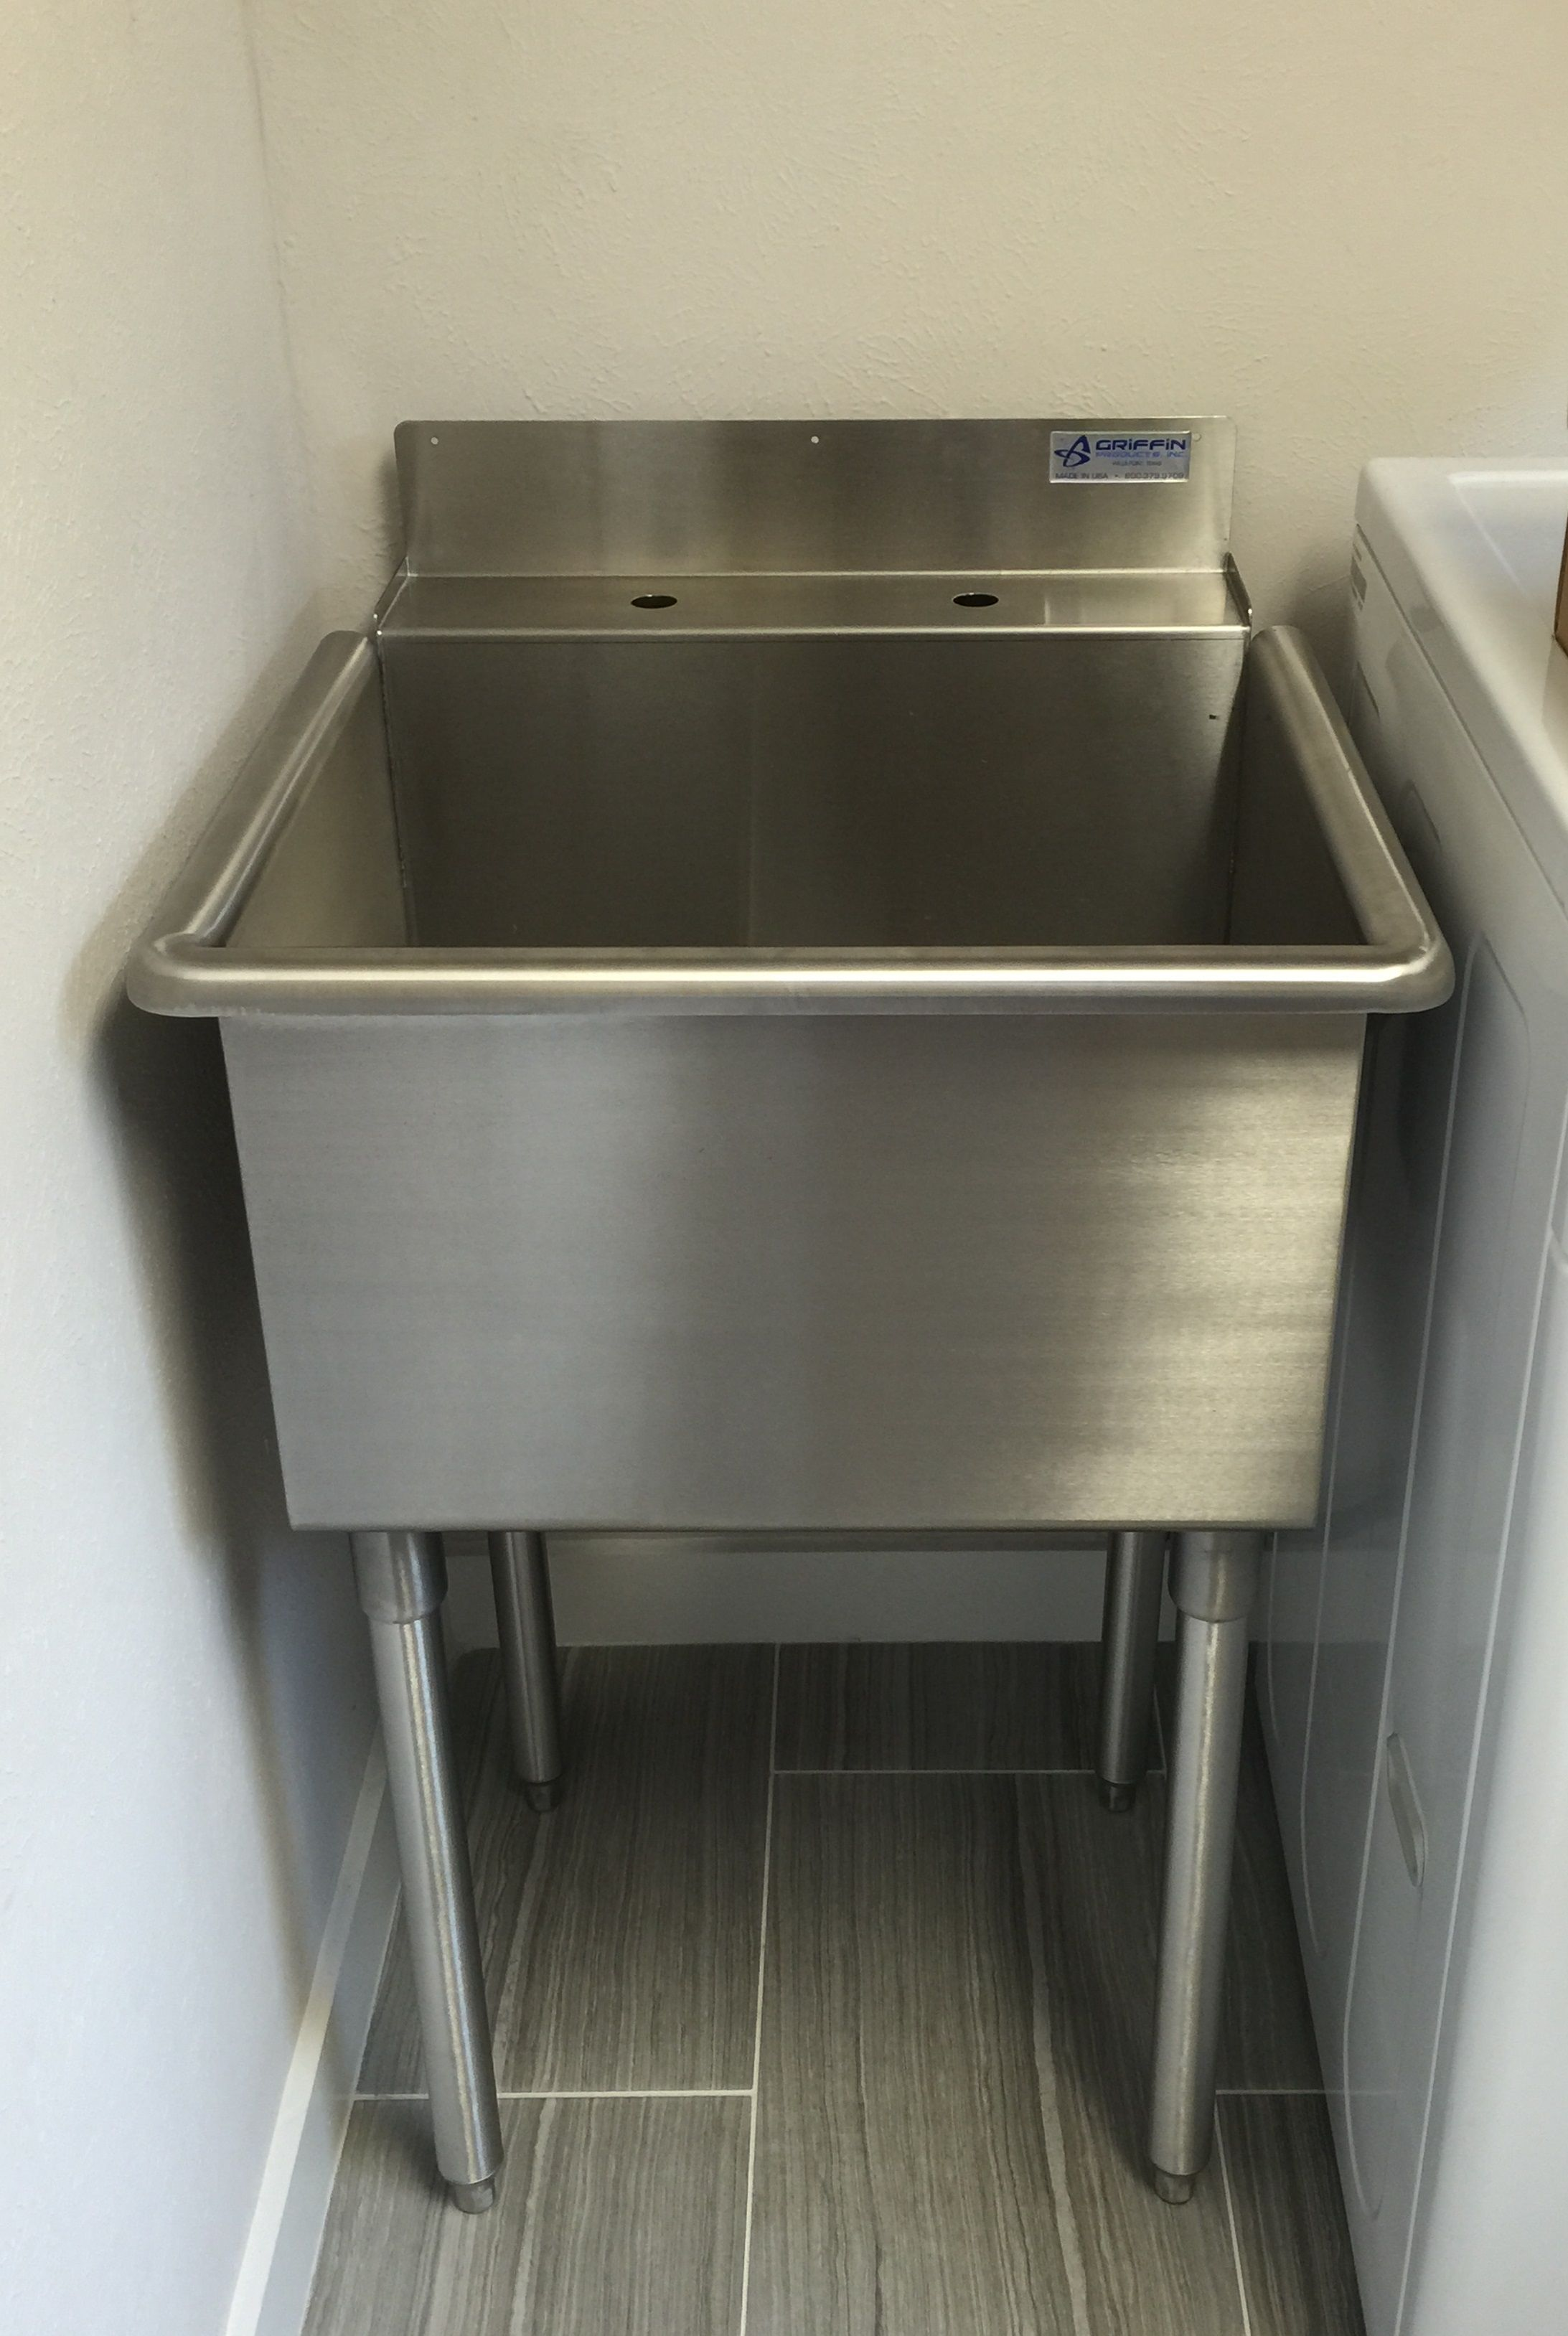 Griffin LT 118 Stainless Utility Sink / Laundry Sink * Made In The USA *